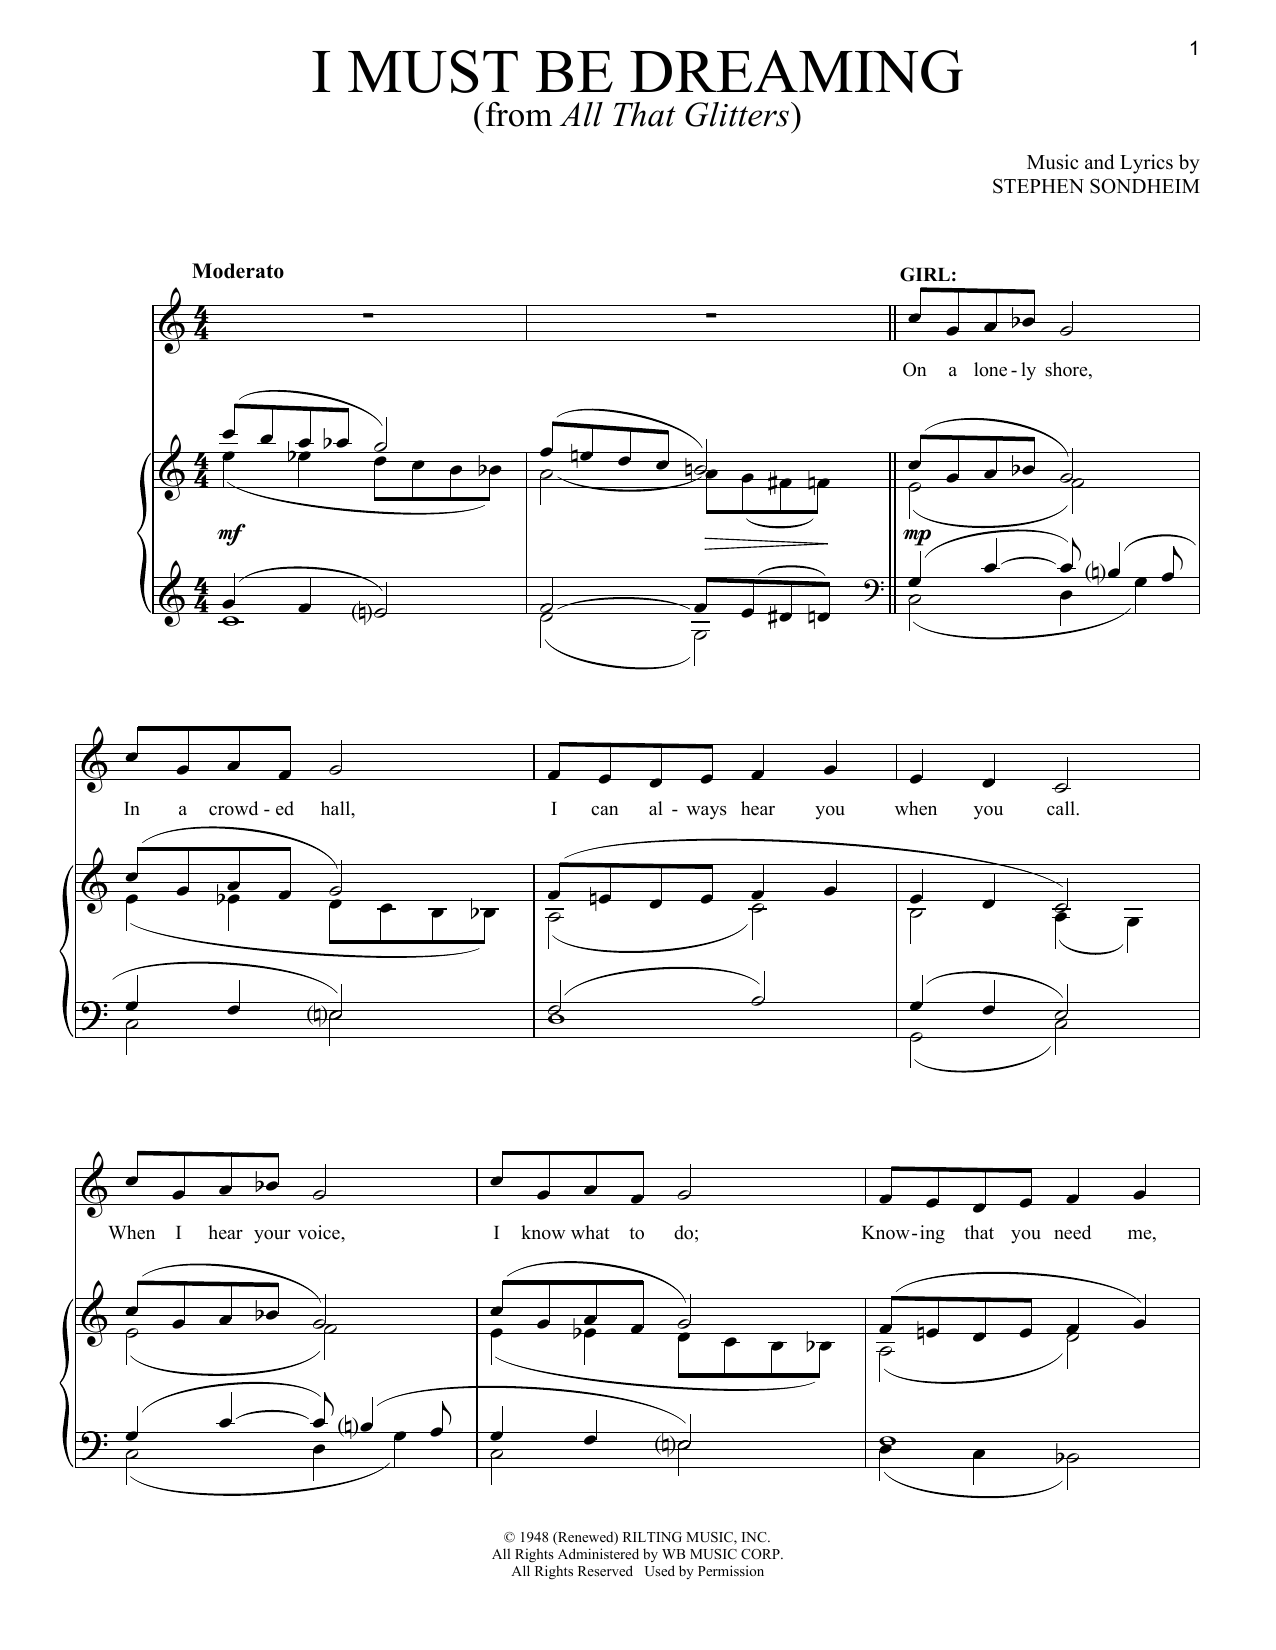 Stephen Sondheim I Must Be Dreaming sheet music notes and chords. Download Printable PDF.